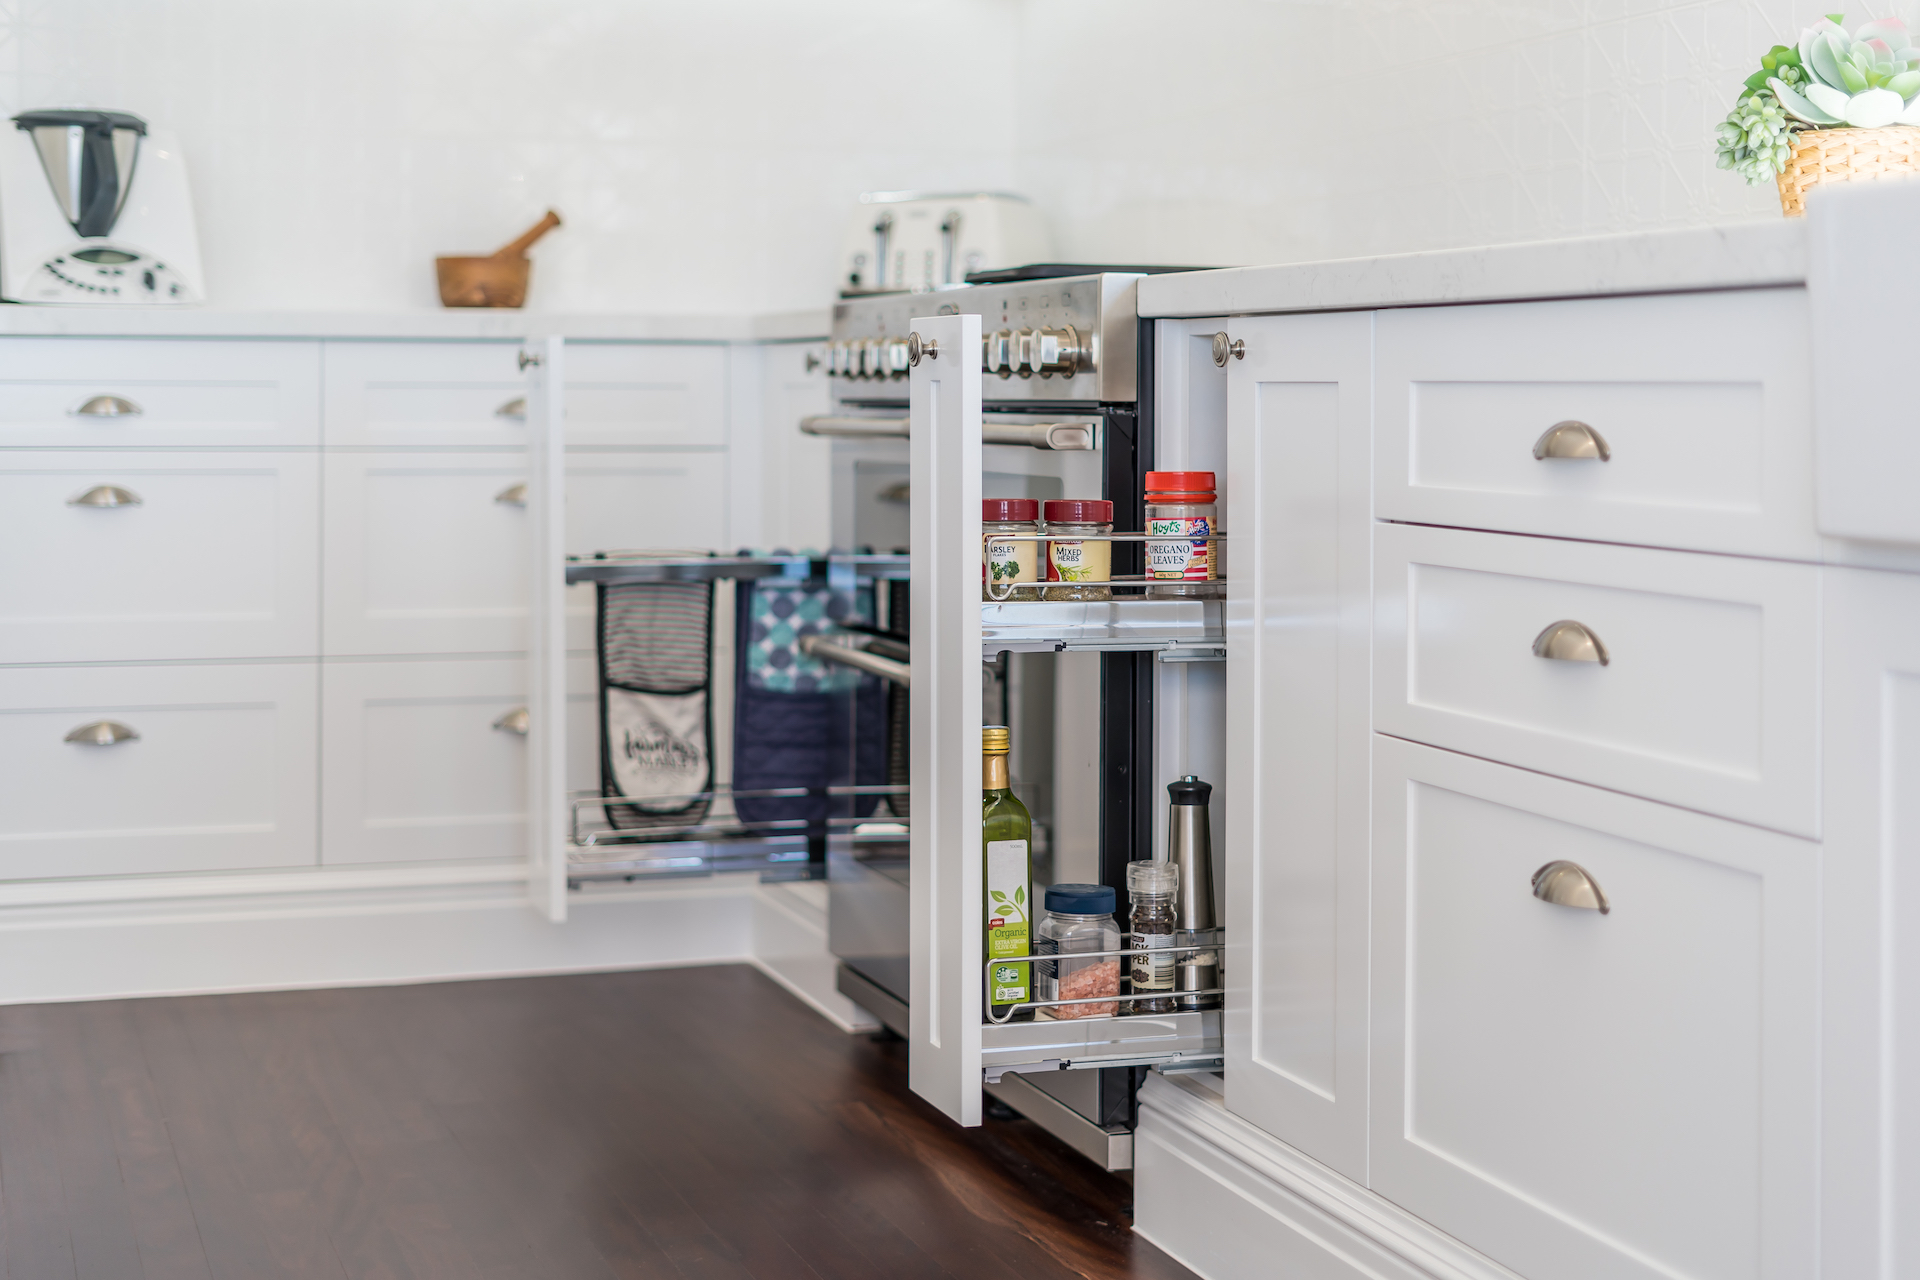 6 Kitchen Renovation Storage Ideas  Kitchens Gold Coast  BJF Joinery